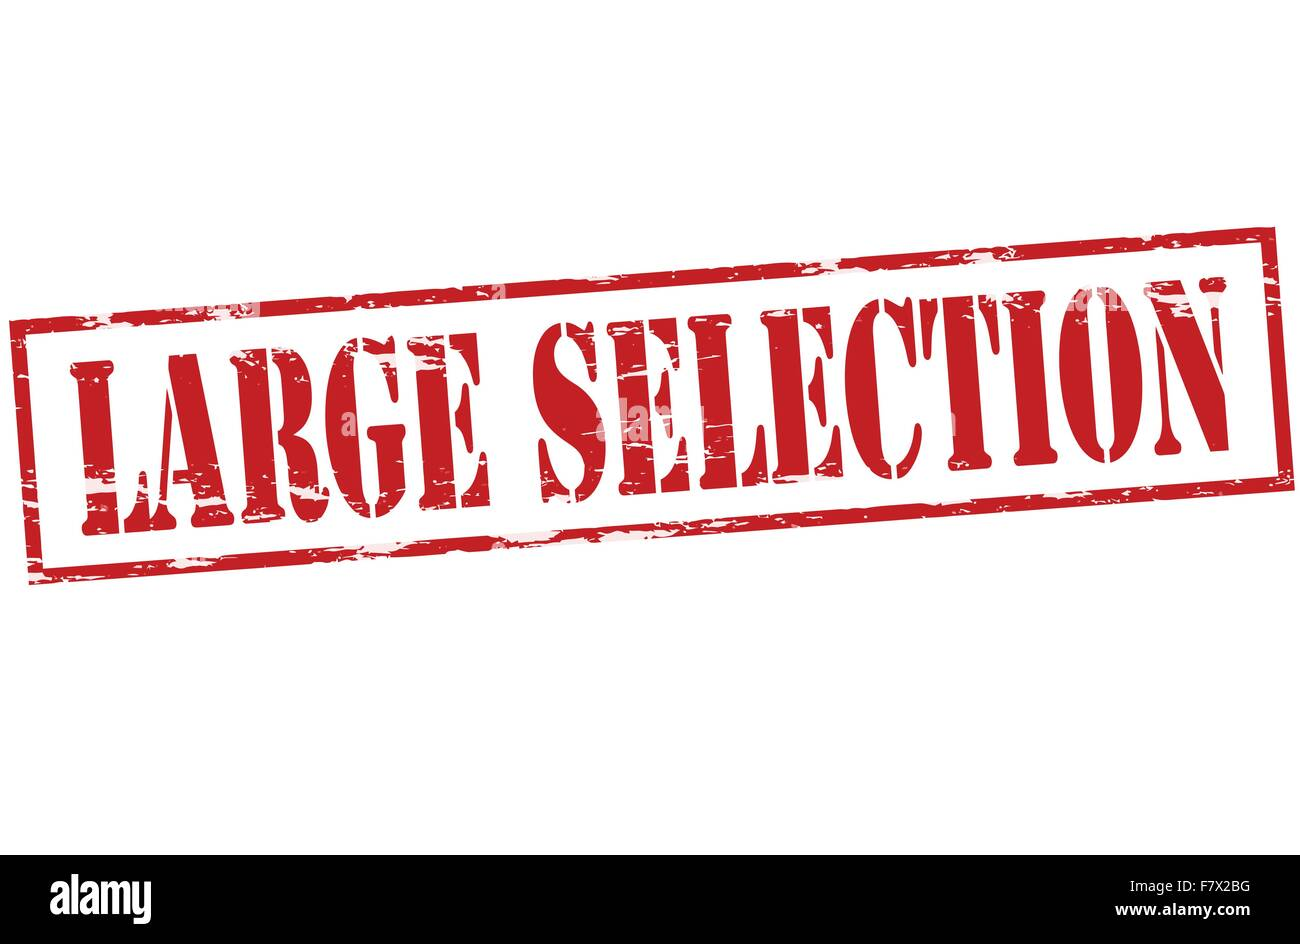 Large selection - Stock Vector